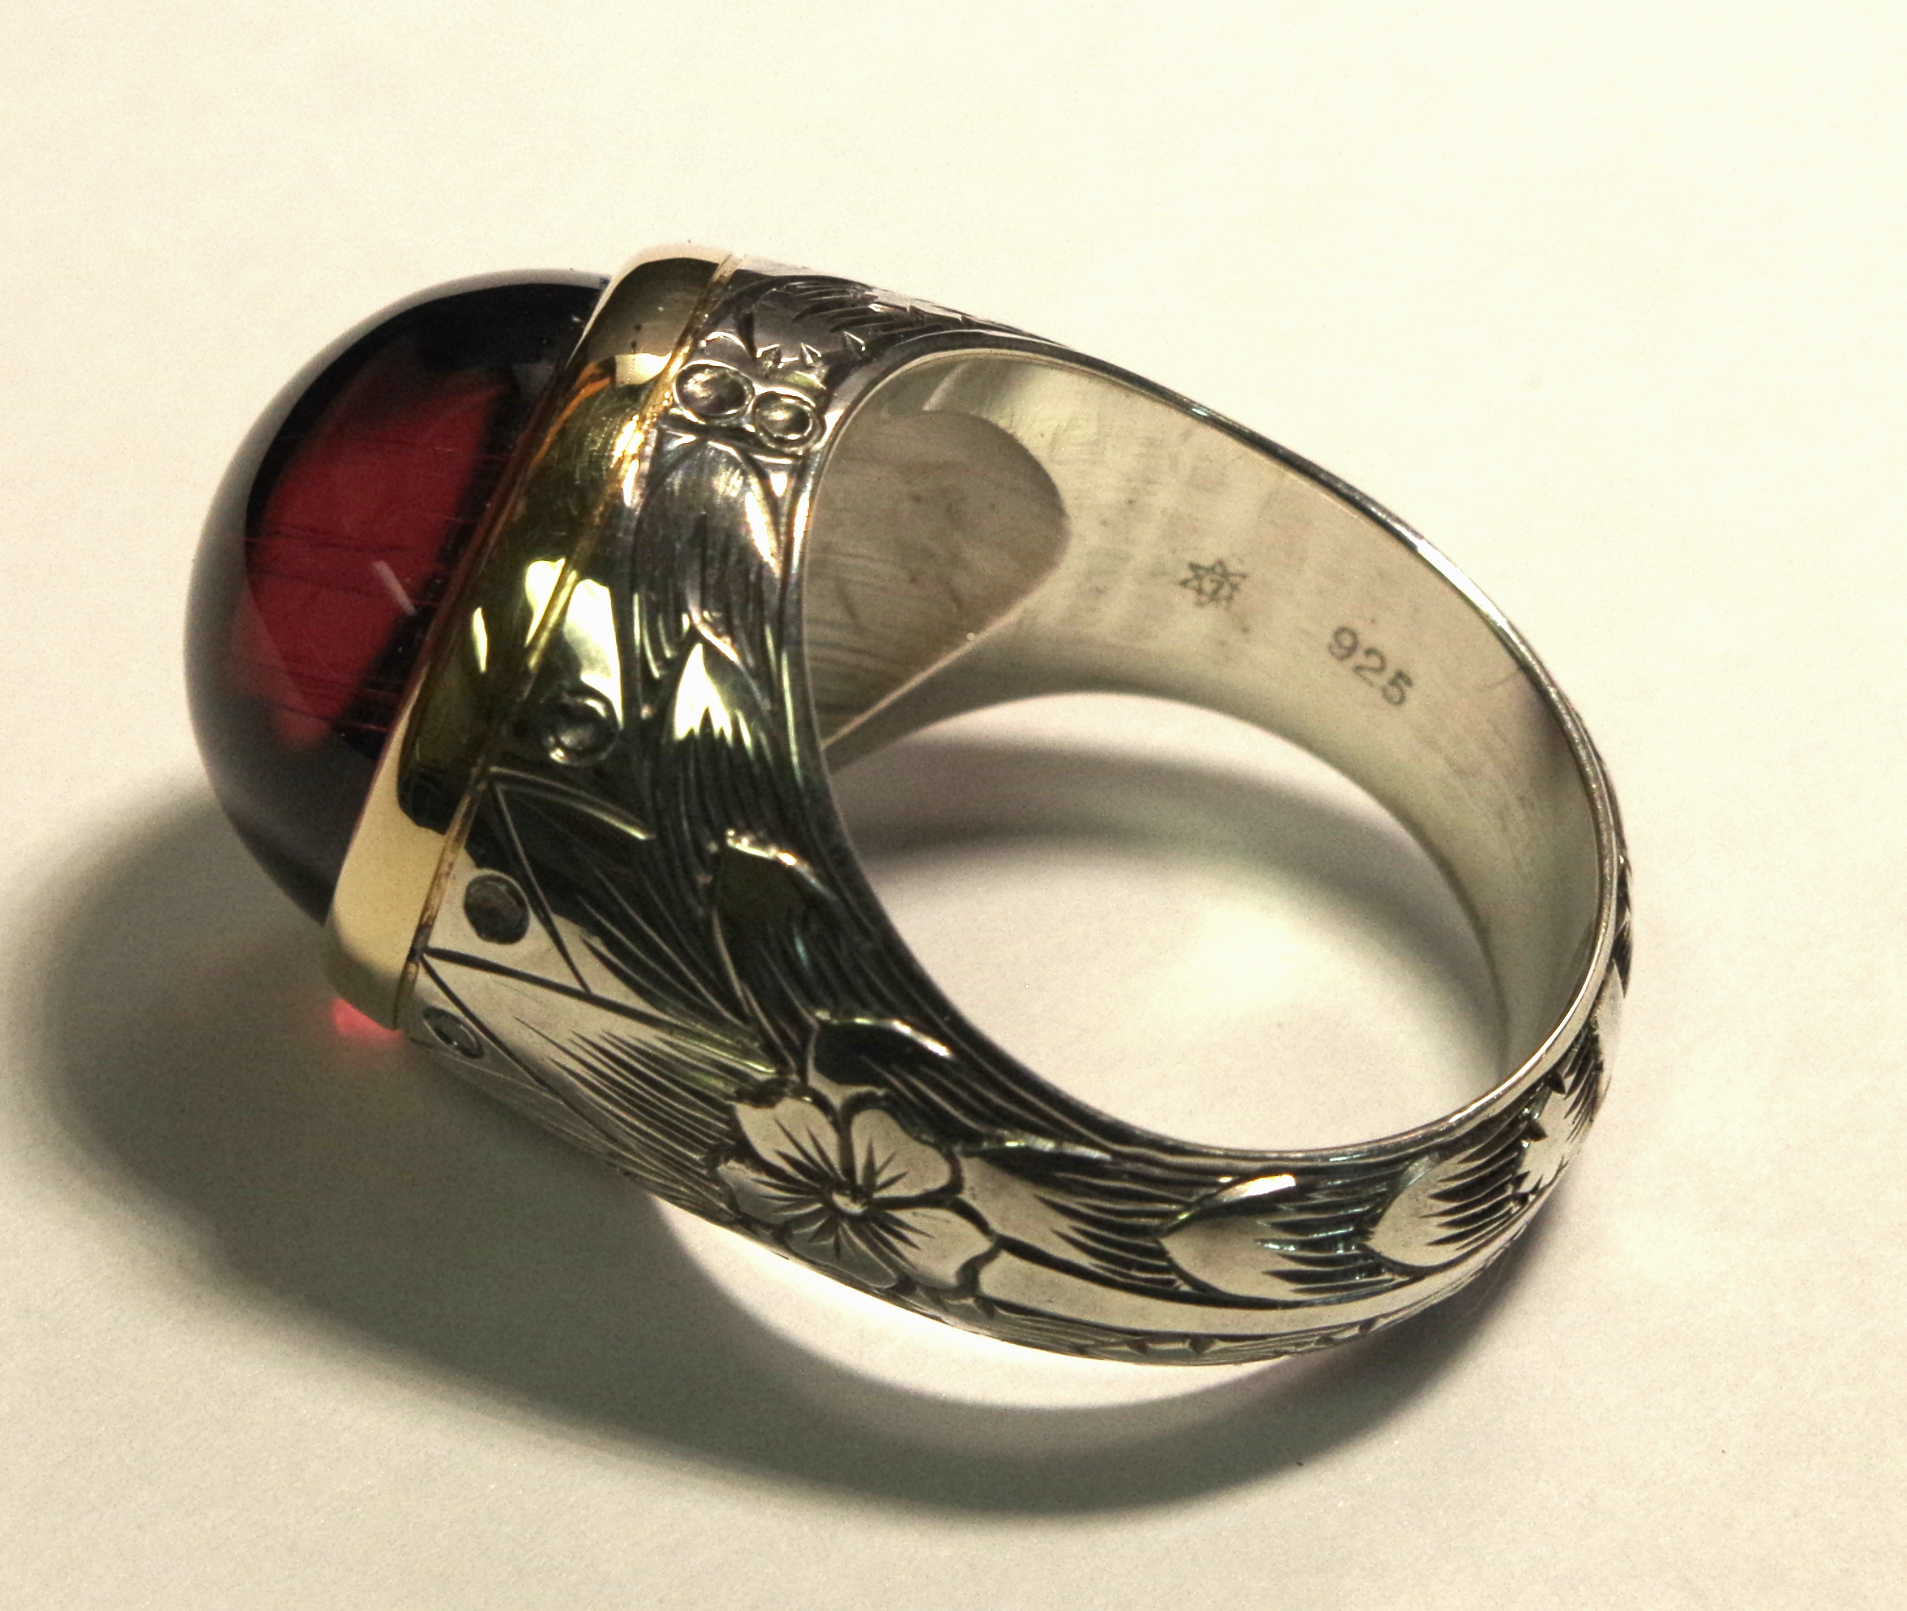 Lady's ring 14KY, Sterling silver, garnet.